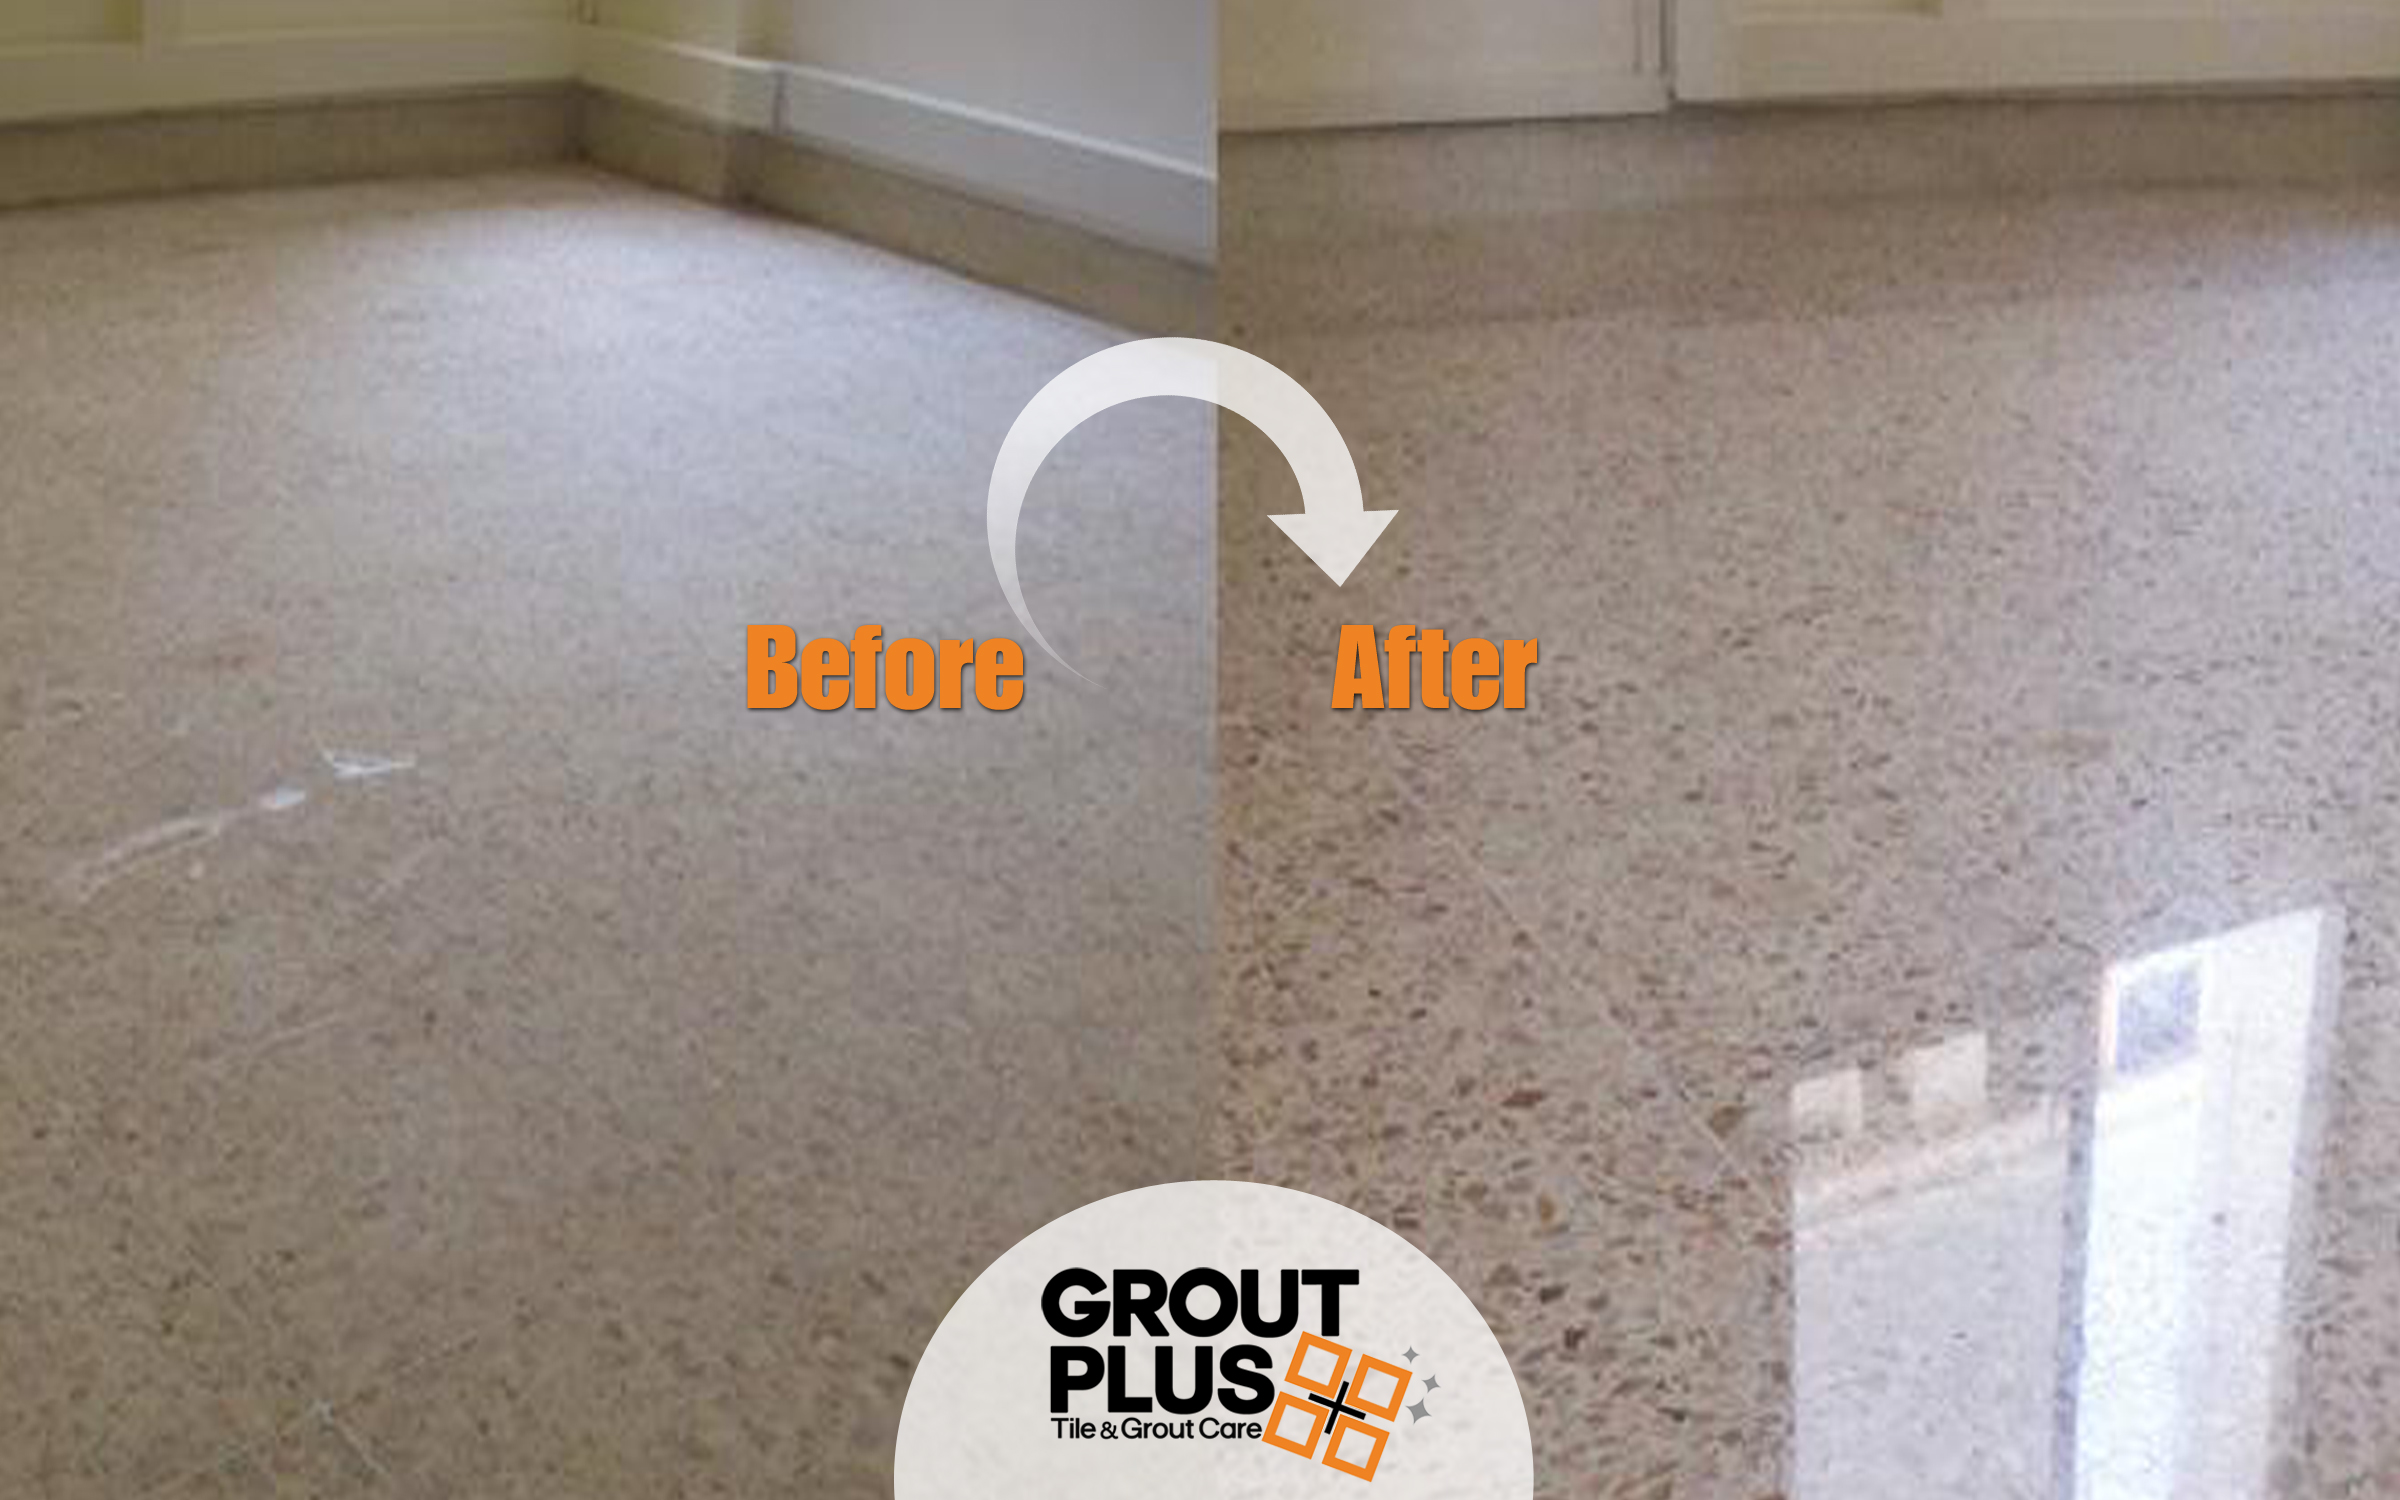 Grout Plus Before After Tile Grout18.jpg